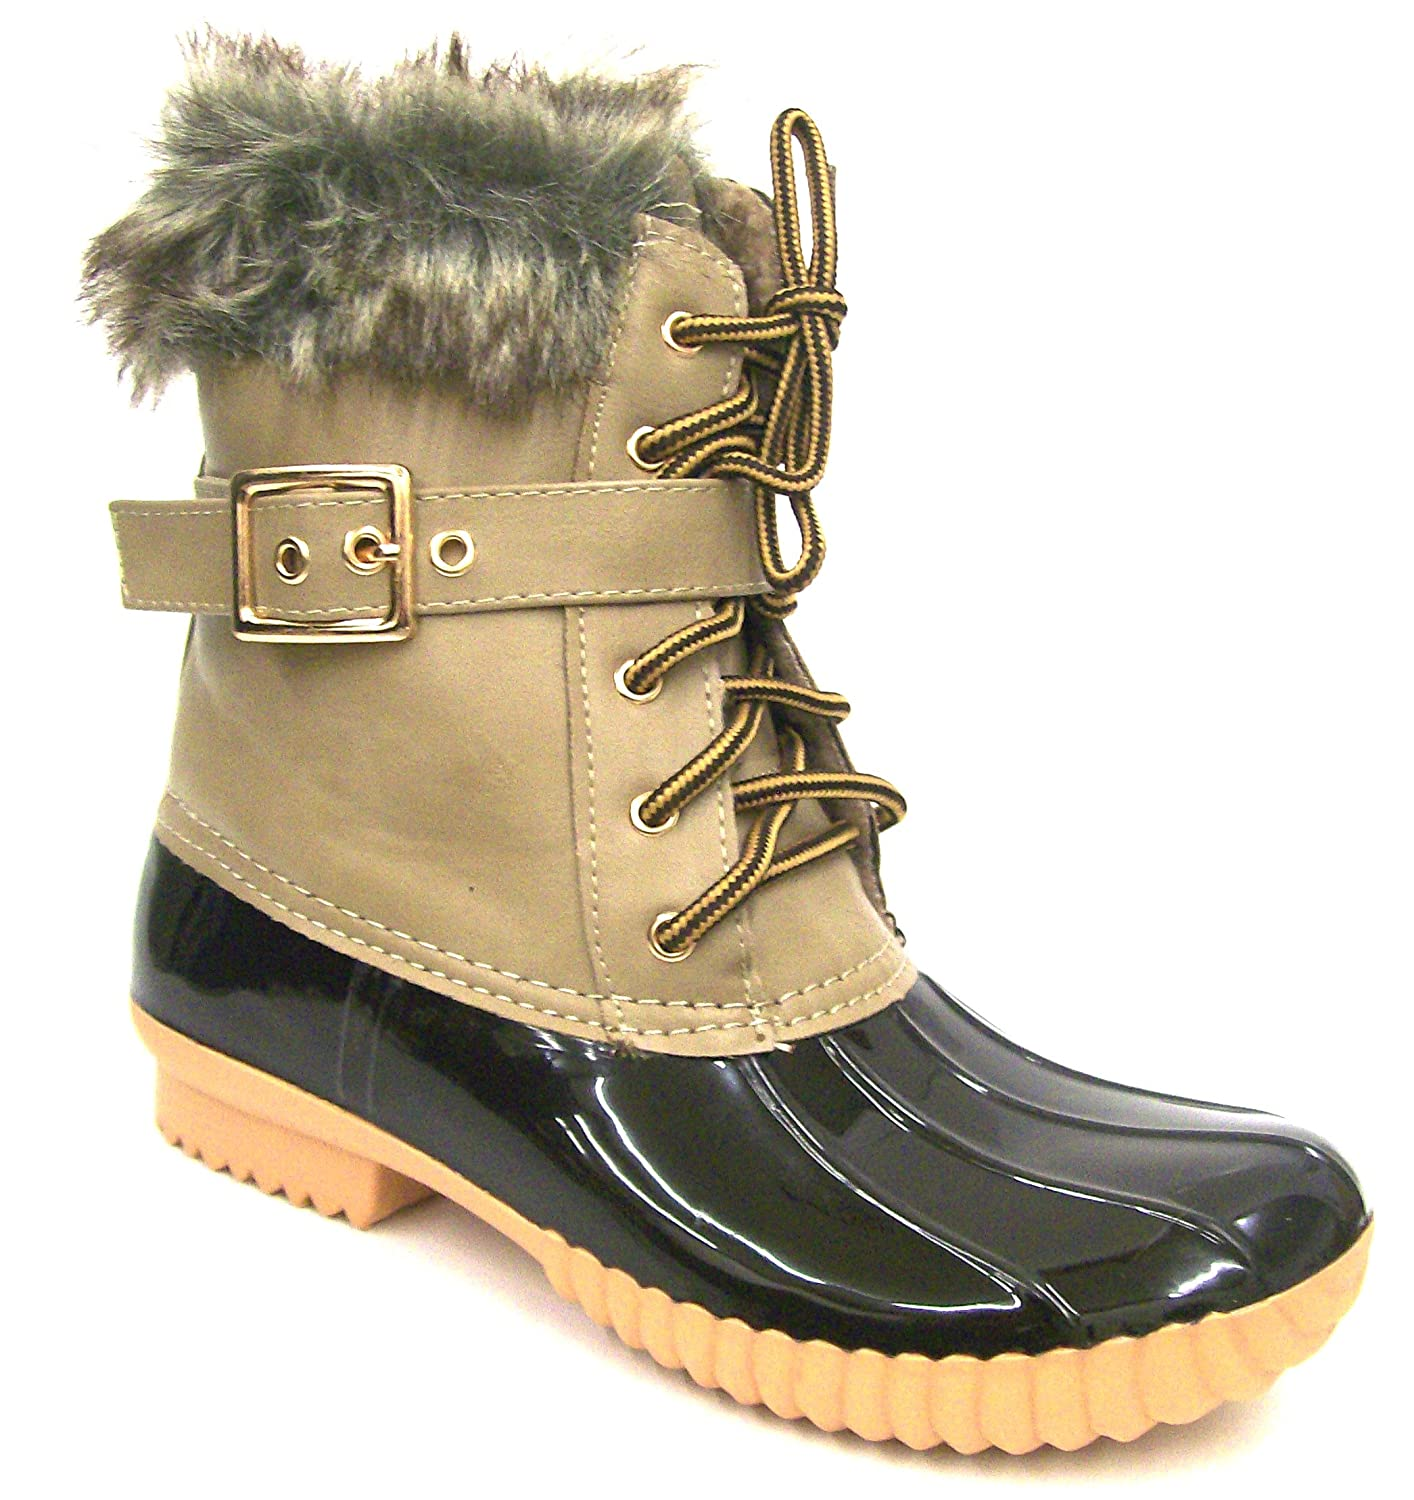 Nature Breeze Duck-01 Women's Chic Lace up Buckled Duck Waterproof Snow Boots B01M3X5CDP 6 B(M) US|Taupe